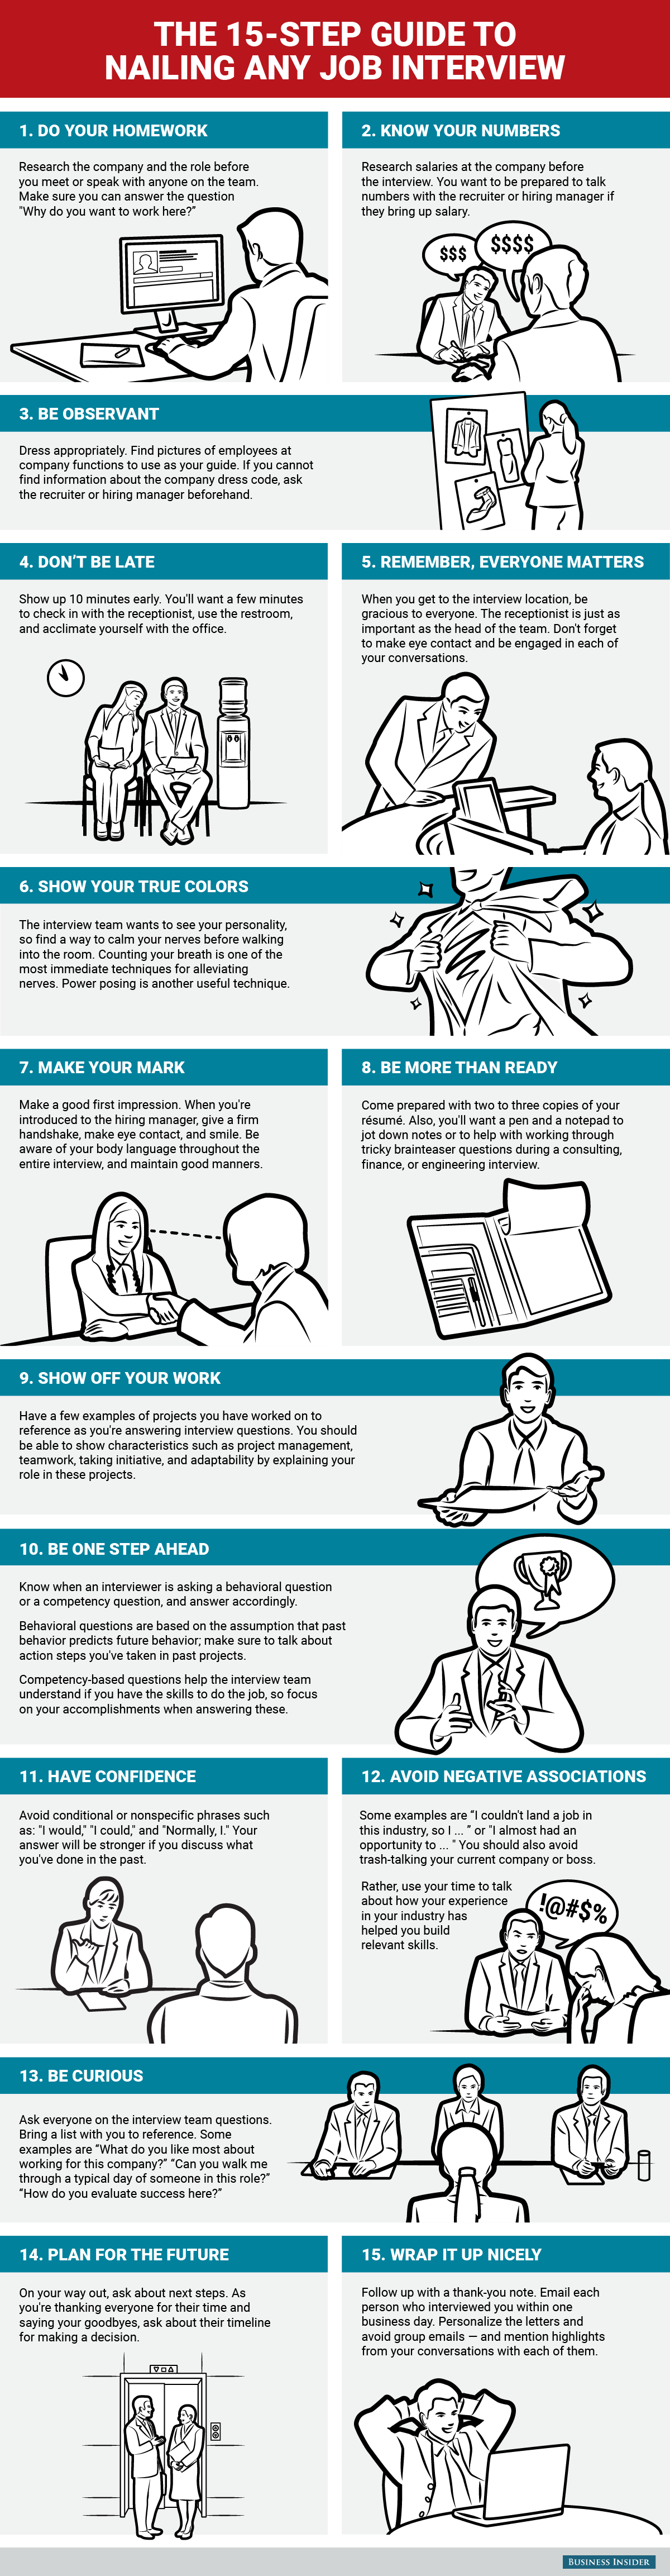 nail-any-job-interview-infographic-3